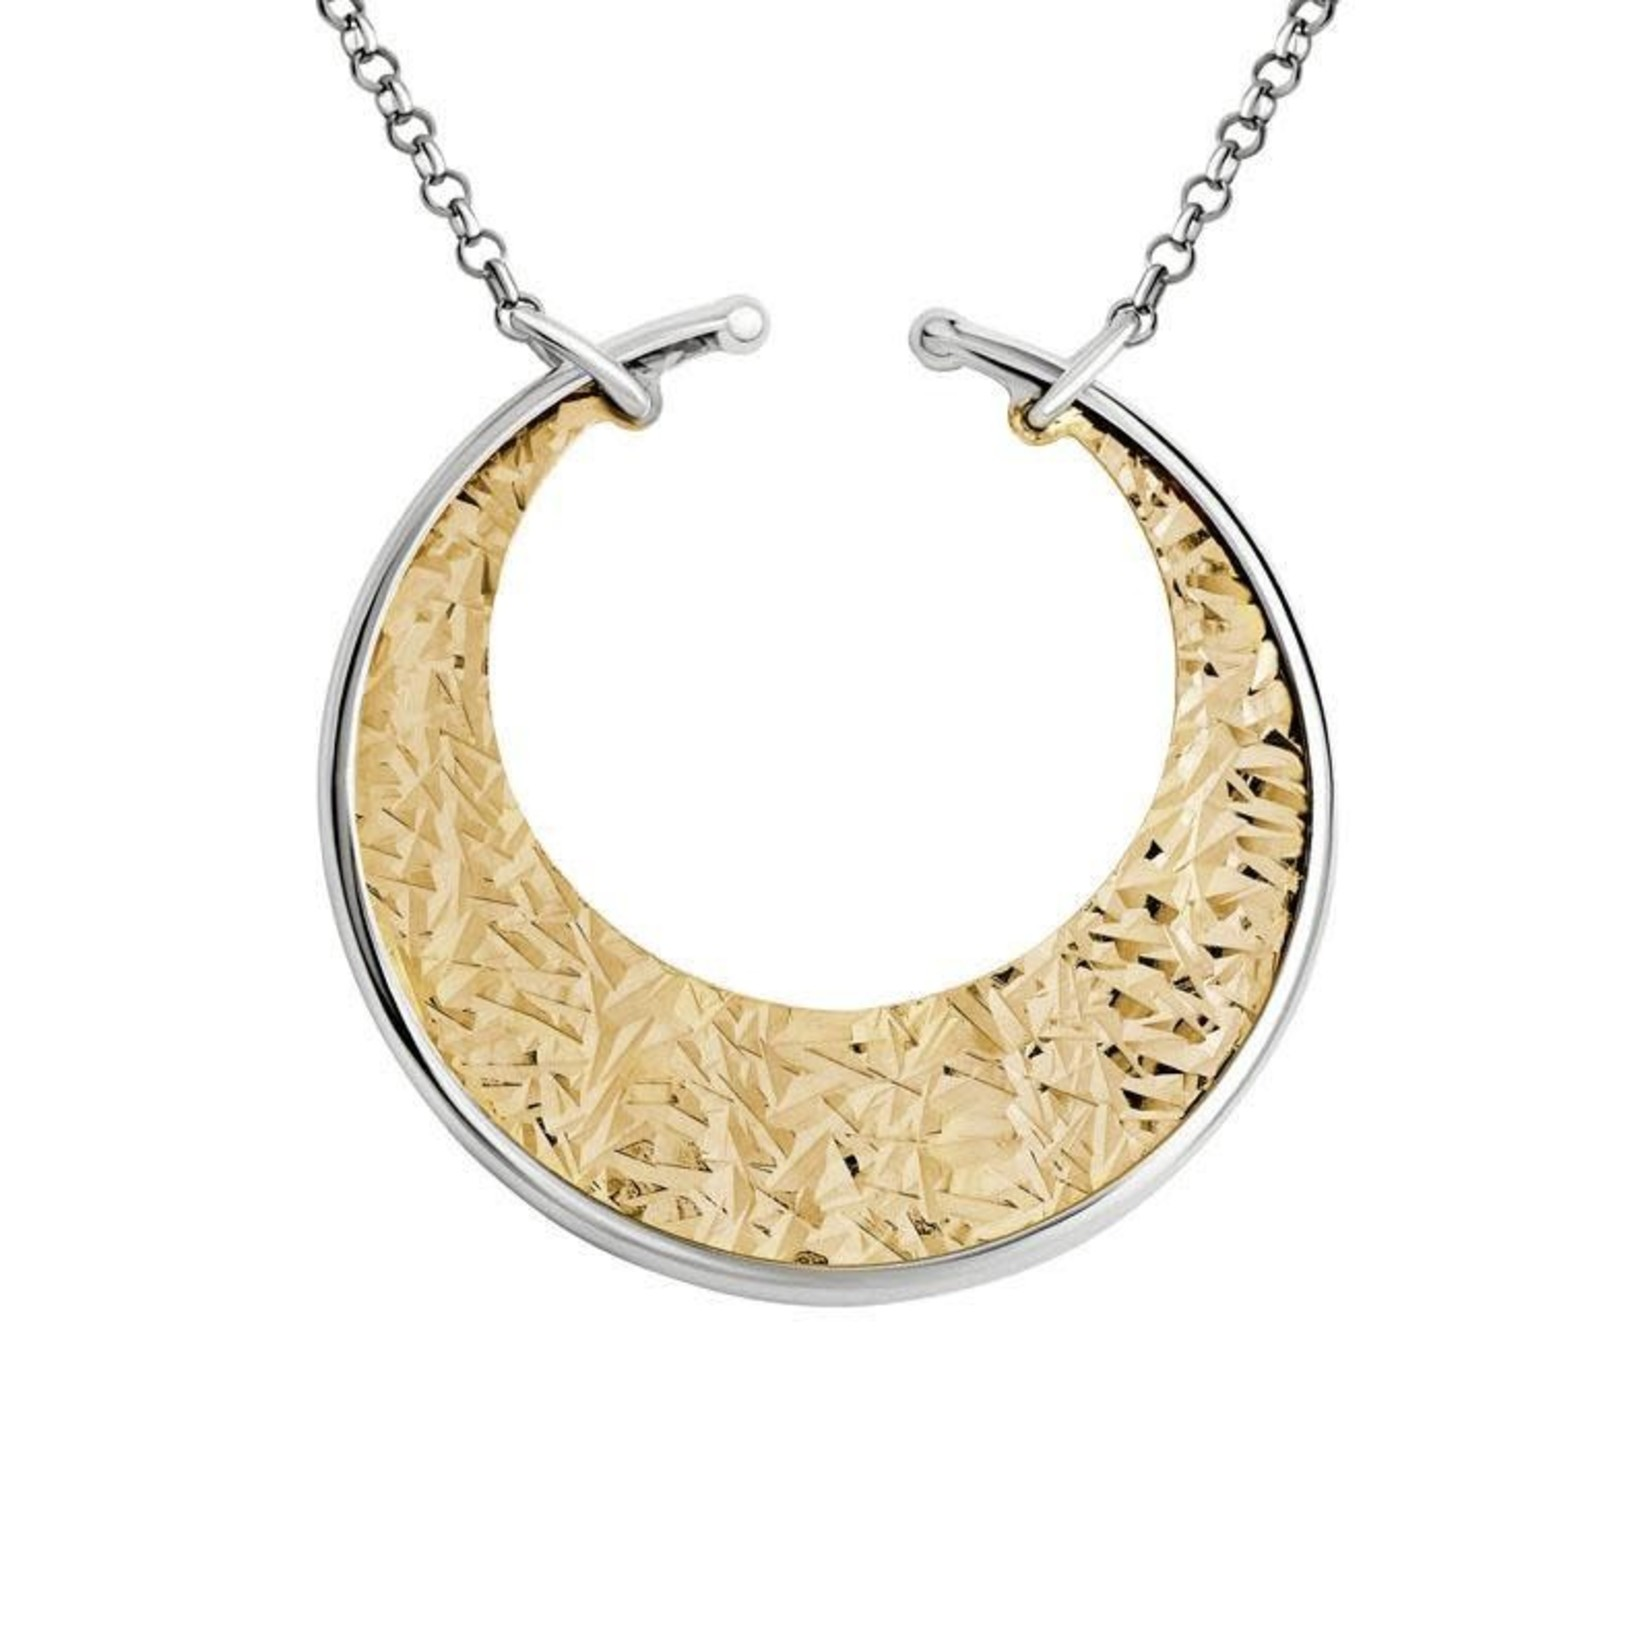 Silver & Gold Plated Crescent Pendant Necklace